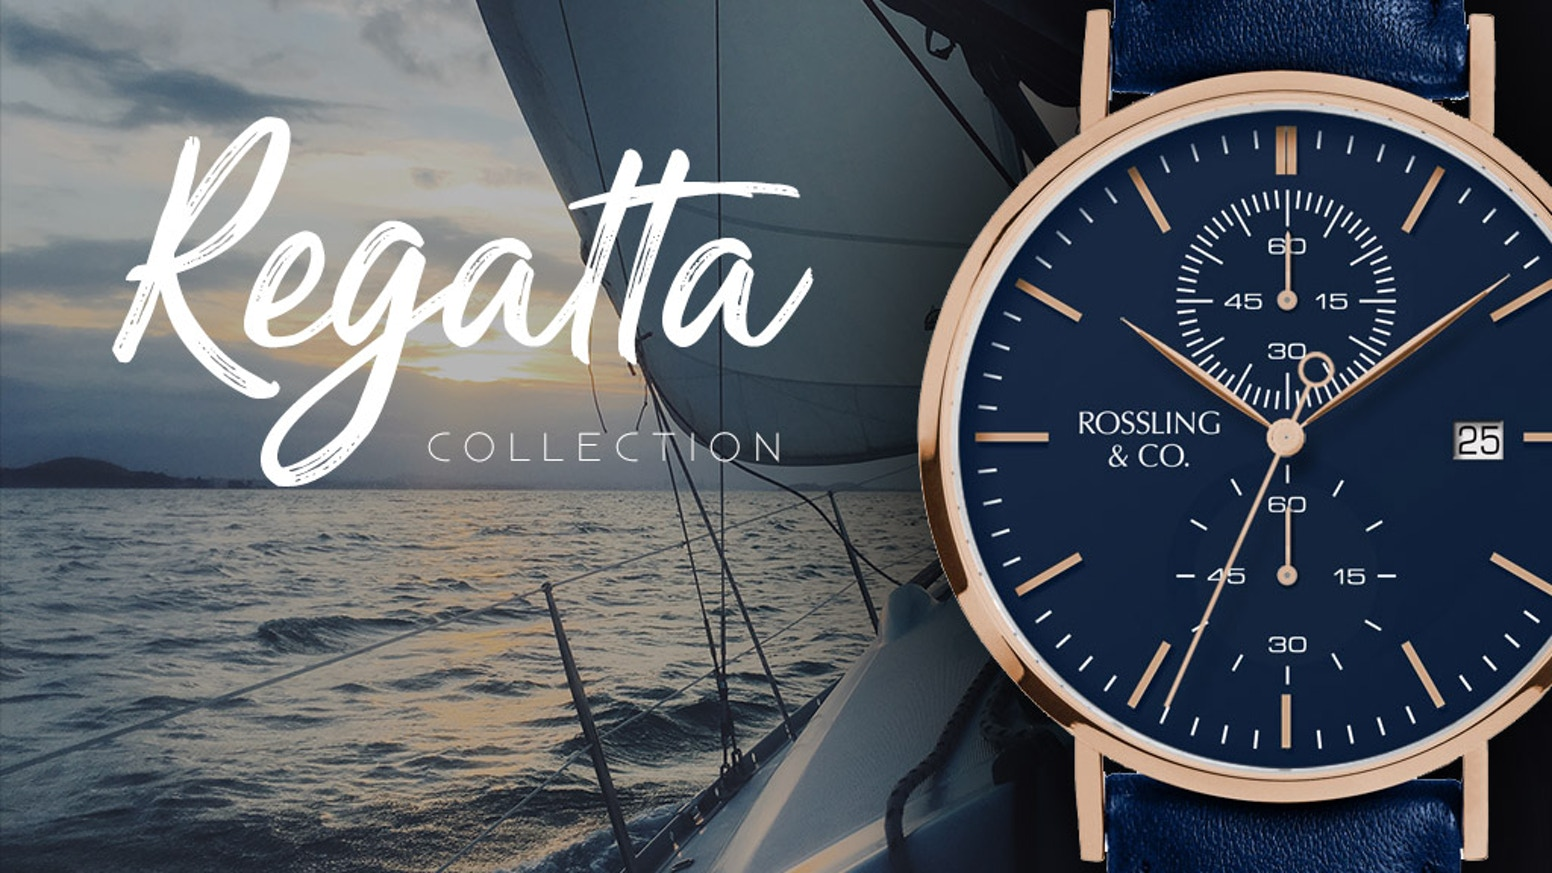 10 Models Inspired by the Nautical Lifestyle. Limited-Edition Chronographs. Handcrafted. Heirloom Quality.